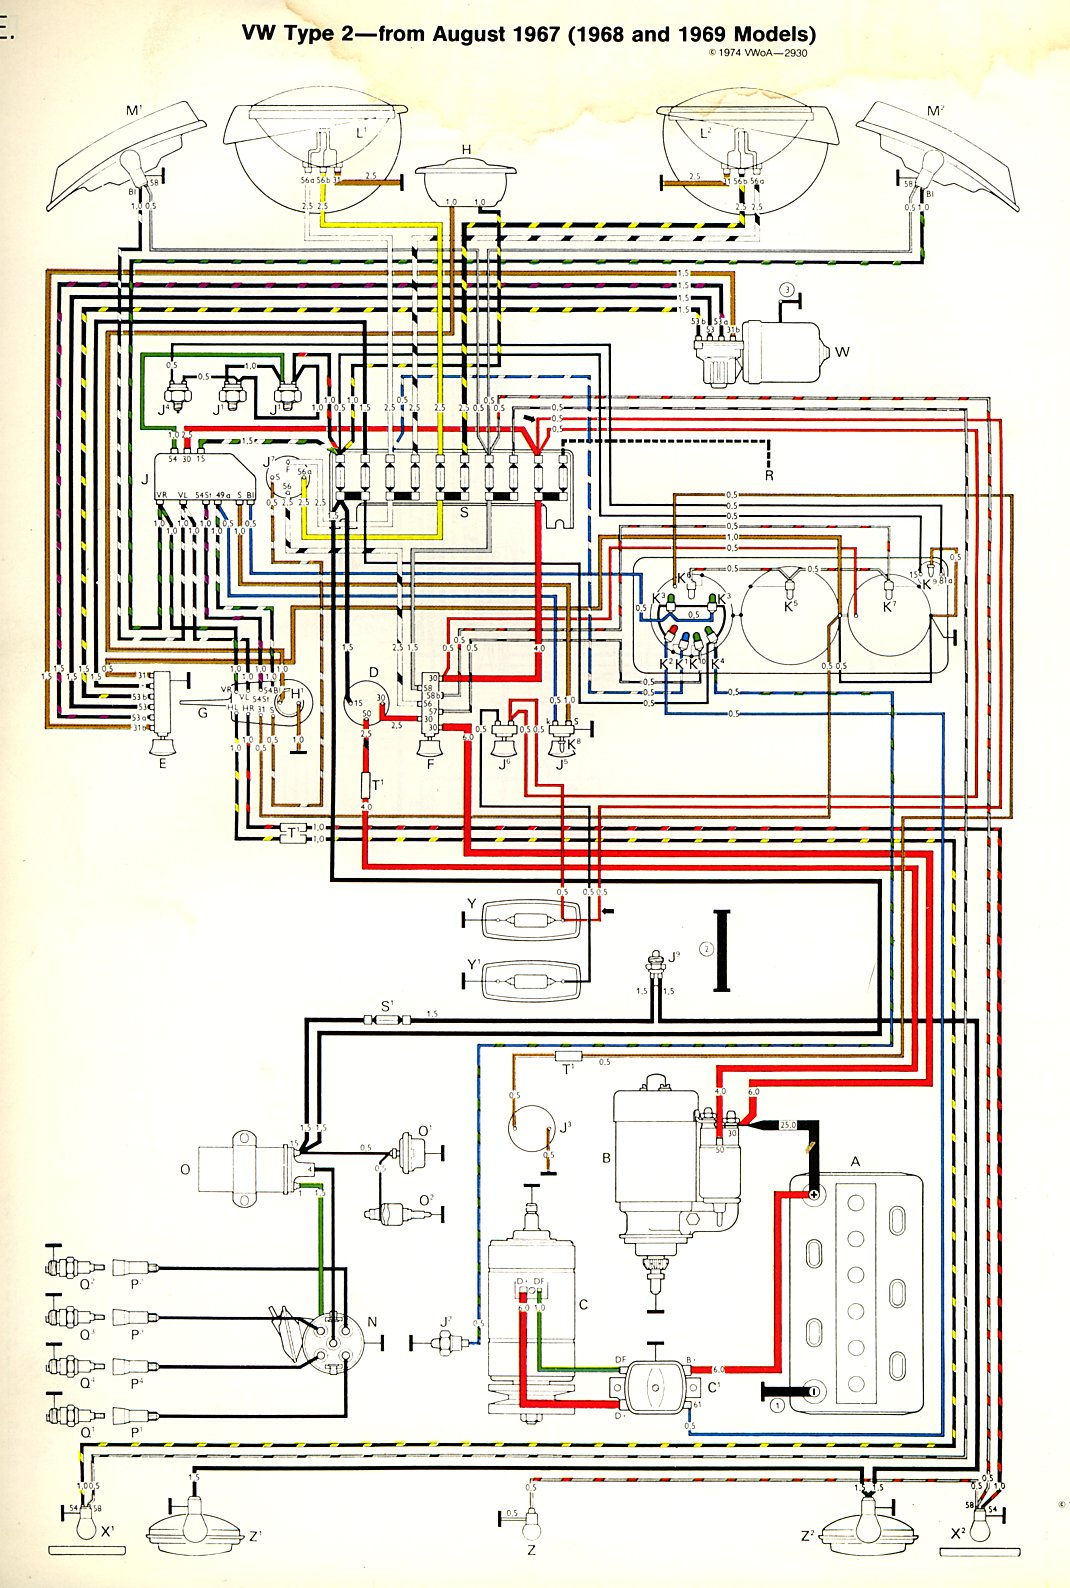 thesamba com type 2 wiring diagrams rh thesamba com Wiring Harness Wiring-Diagram 1977 Volkswagen Bus Wiring Diagram